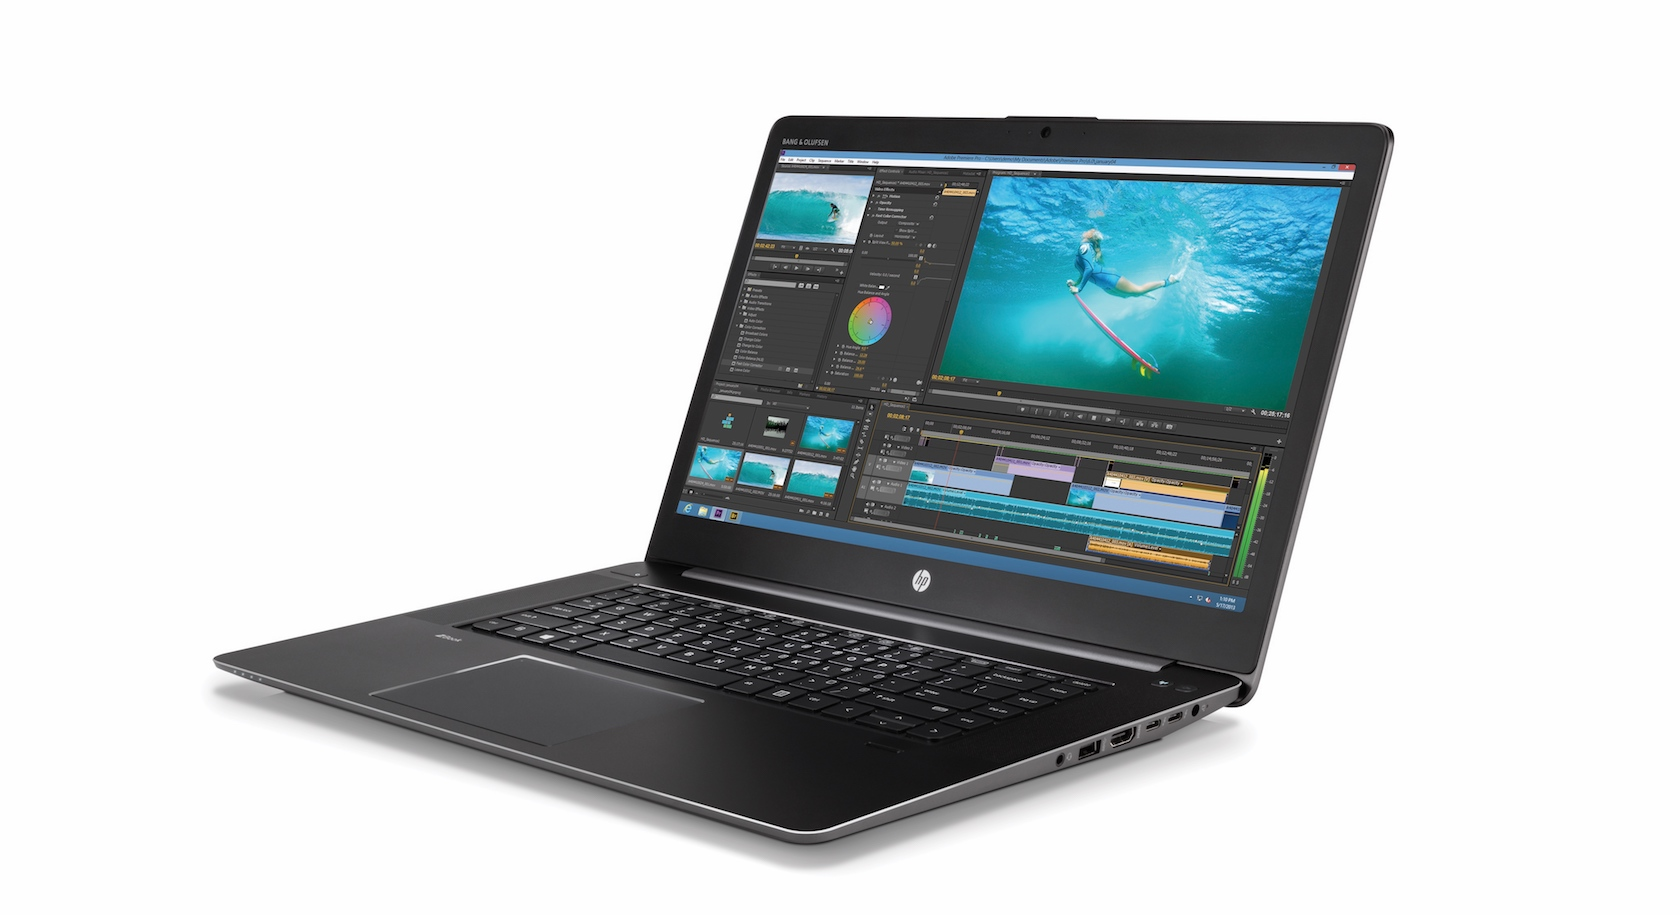 "HP Zbook 15 studio G3 i7-6700HQ/8GB/256 GB M.2/NVIDIA® Quadro® M1000M SE 4GB/15,6"" FHD/Win 10 Pro + Win 7 Pro"